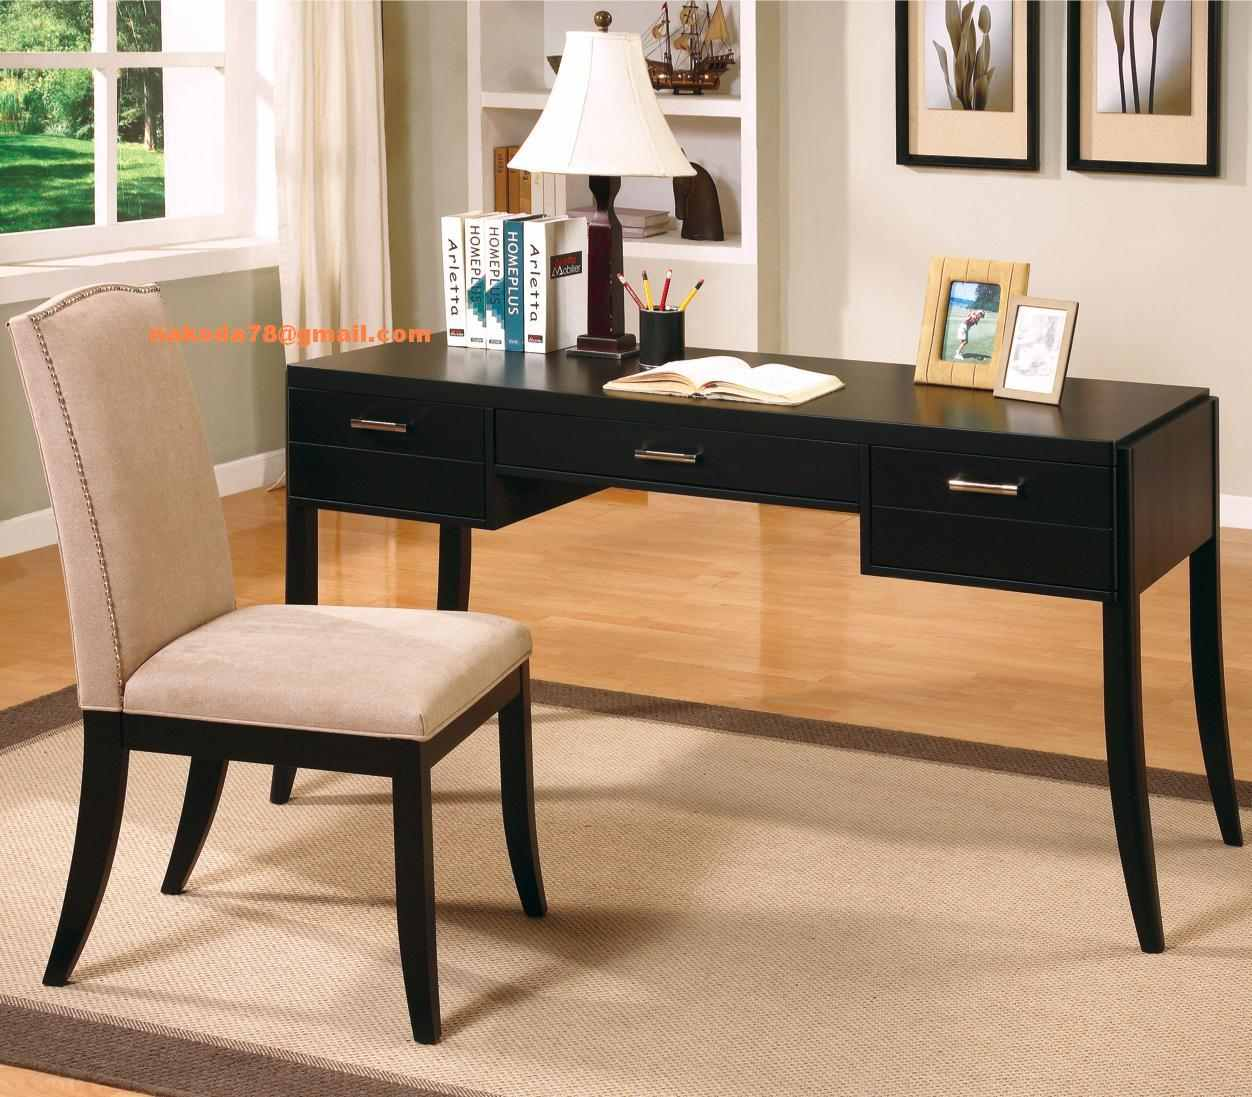 desks_35.184141911_large Top 5 Furniture Trends You Can Choose From